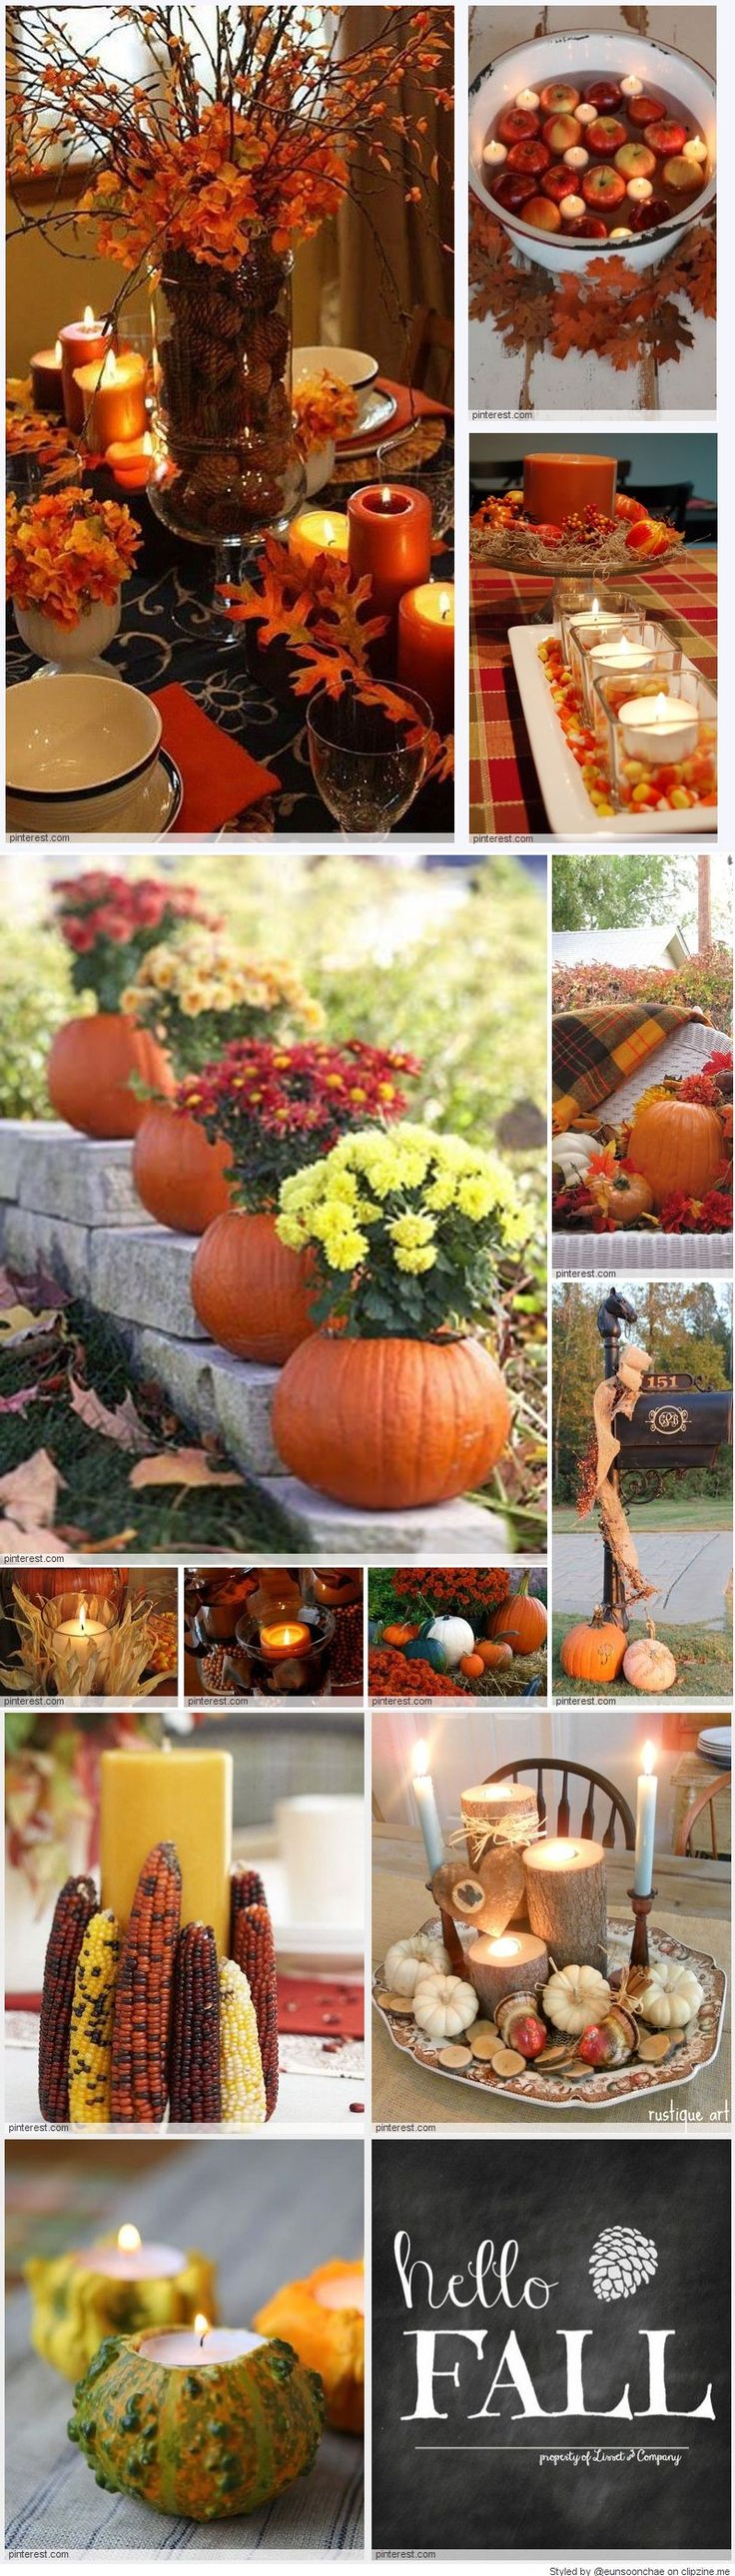 Doors pleasant fall decorating ideas for outside pinterest autumn - Fall Decorating Ideas